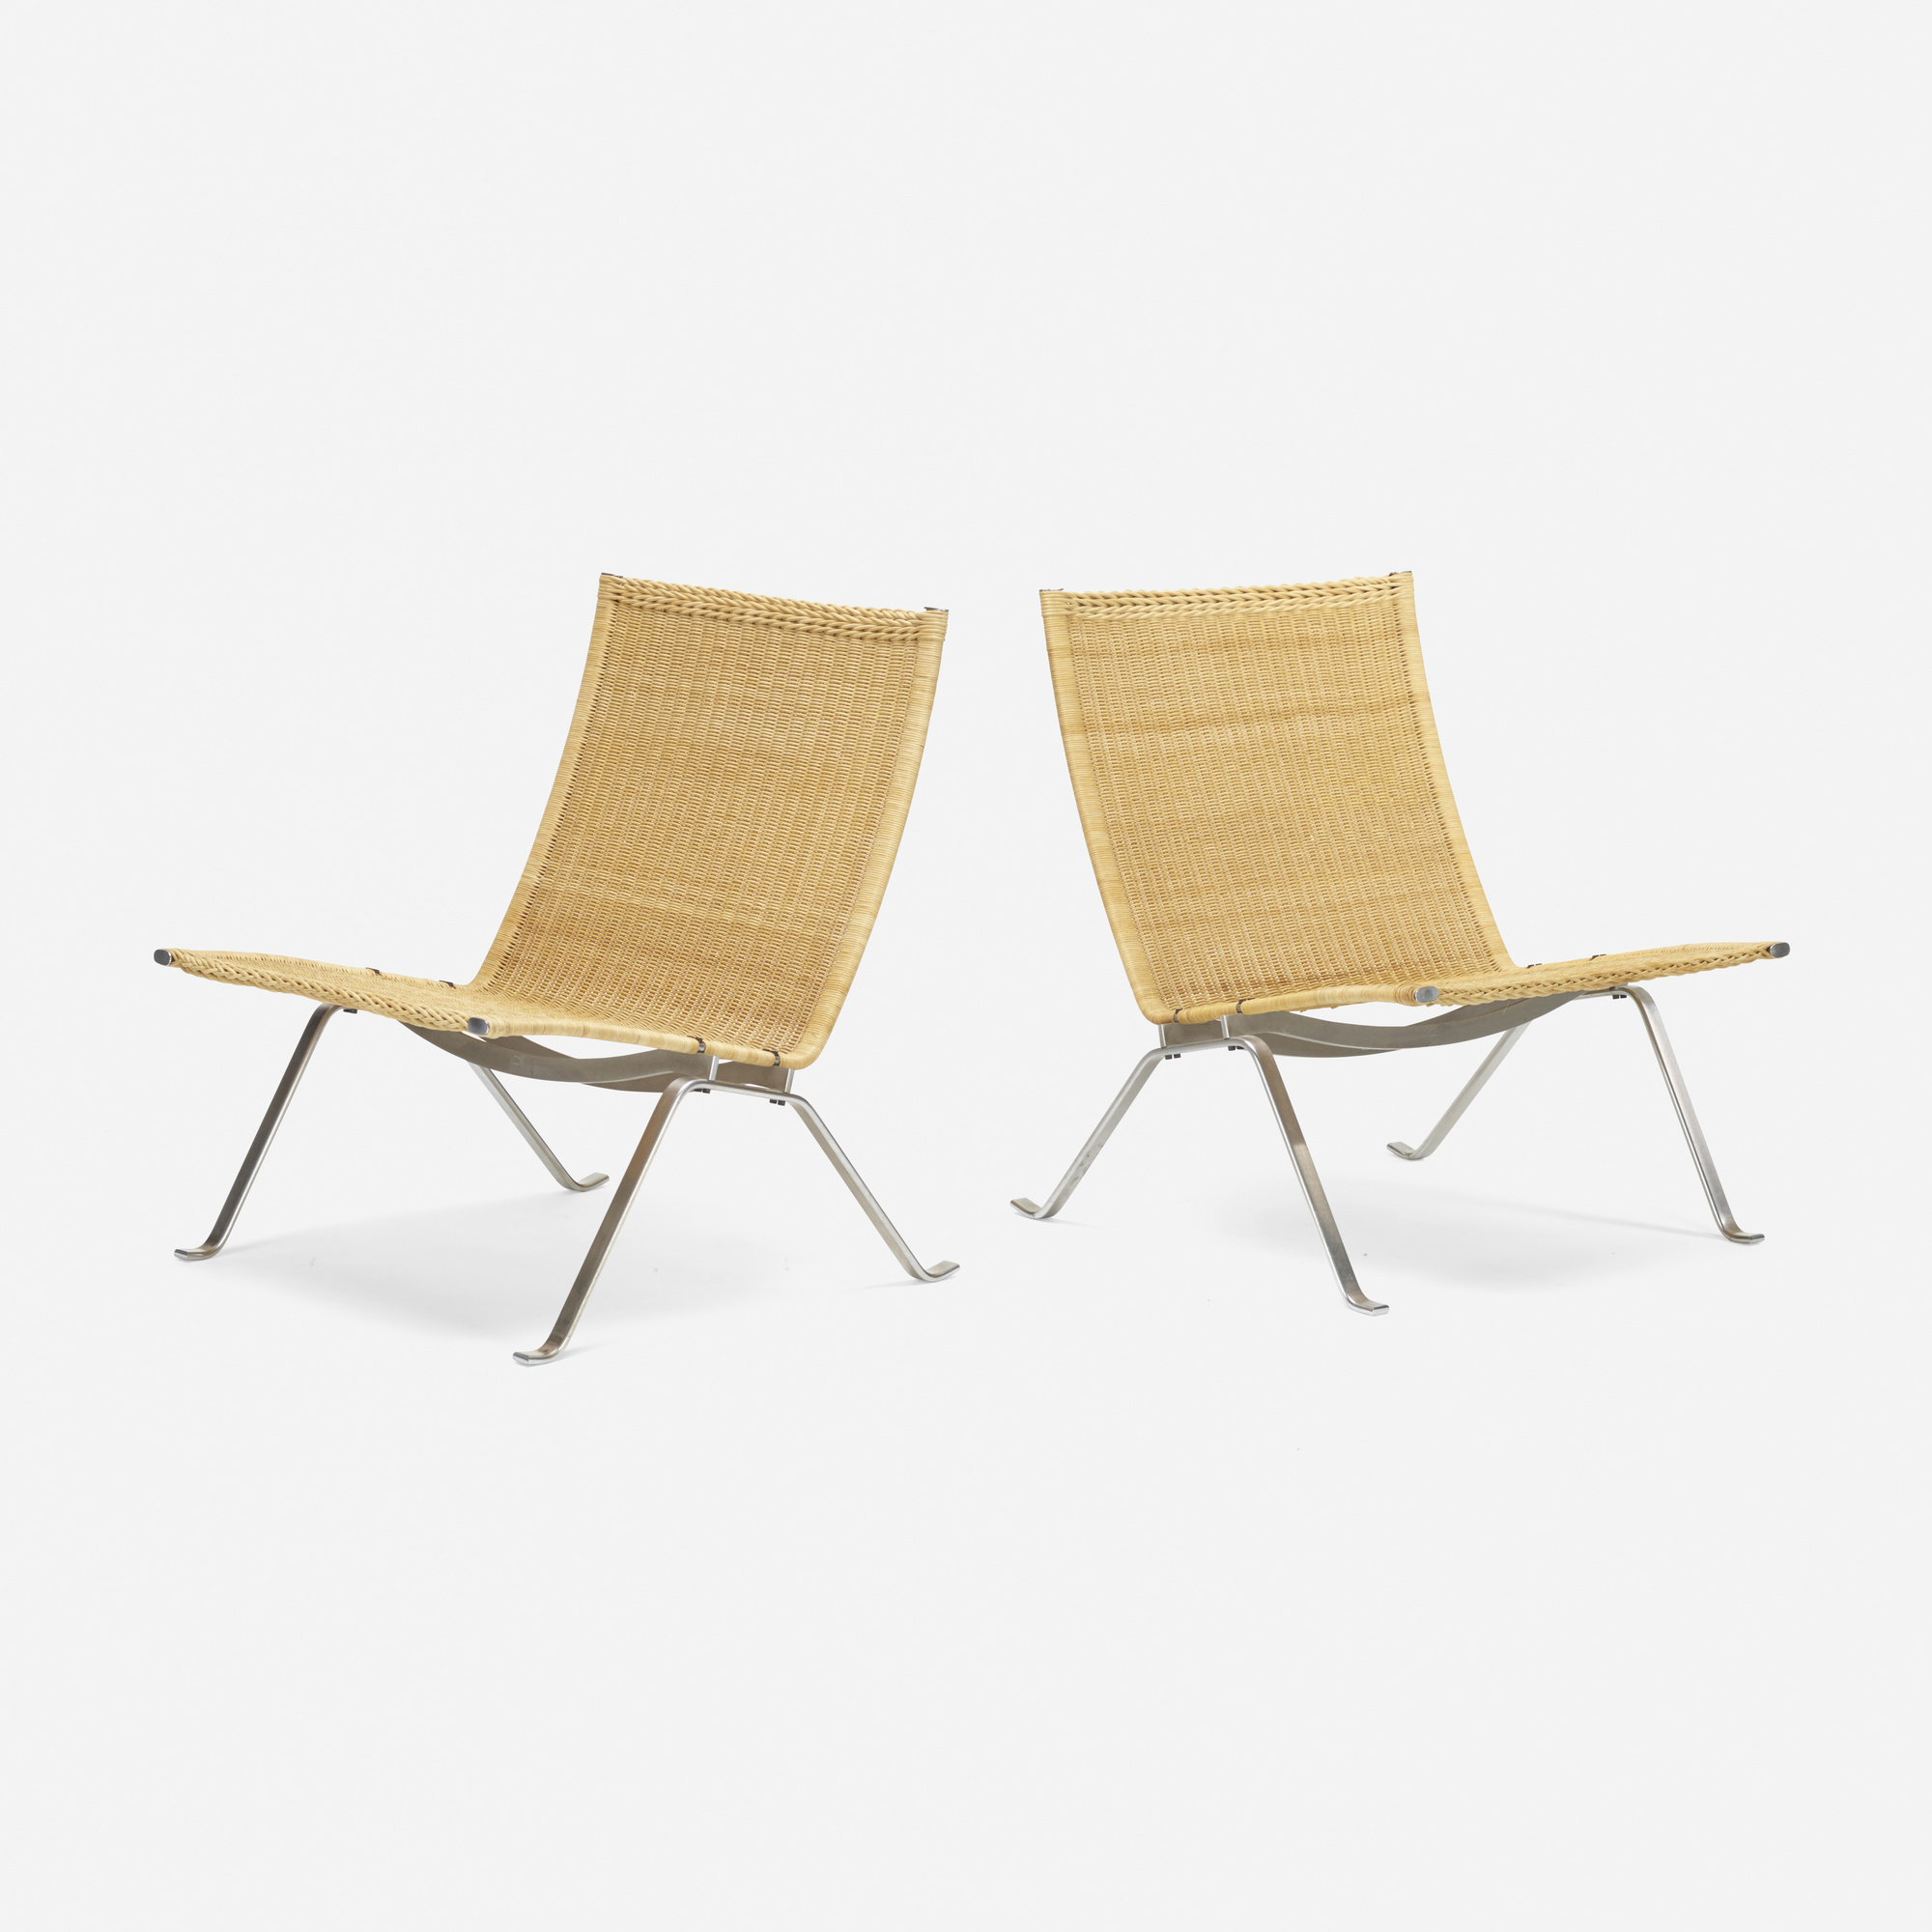 435: Poul Kjaerholm / PK 22 lounge chairs, pair (1 of 3)